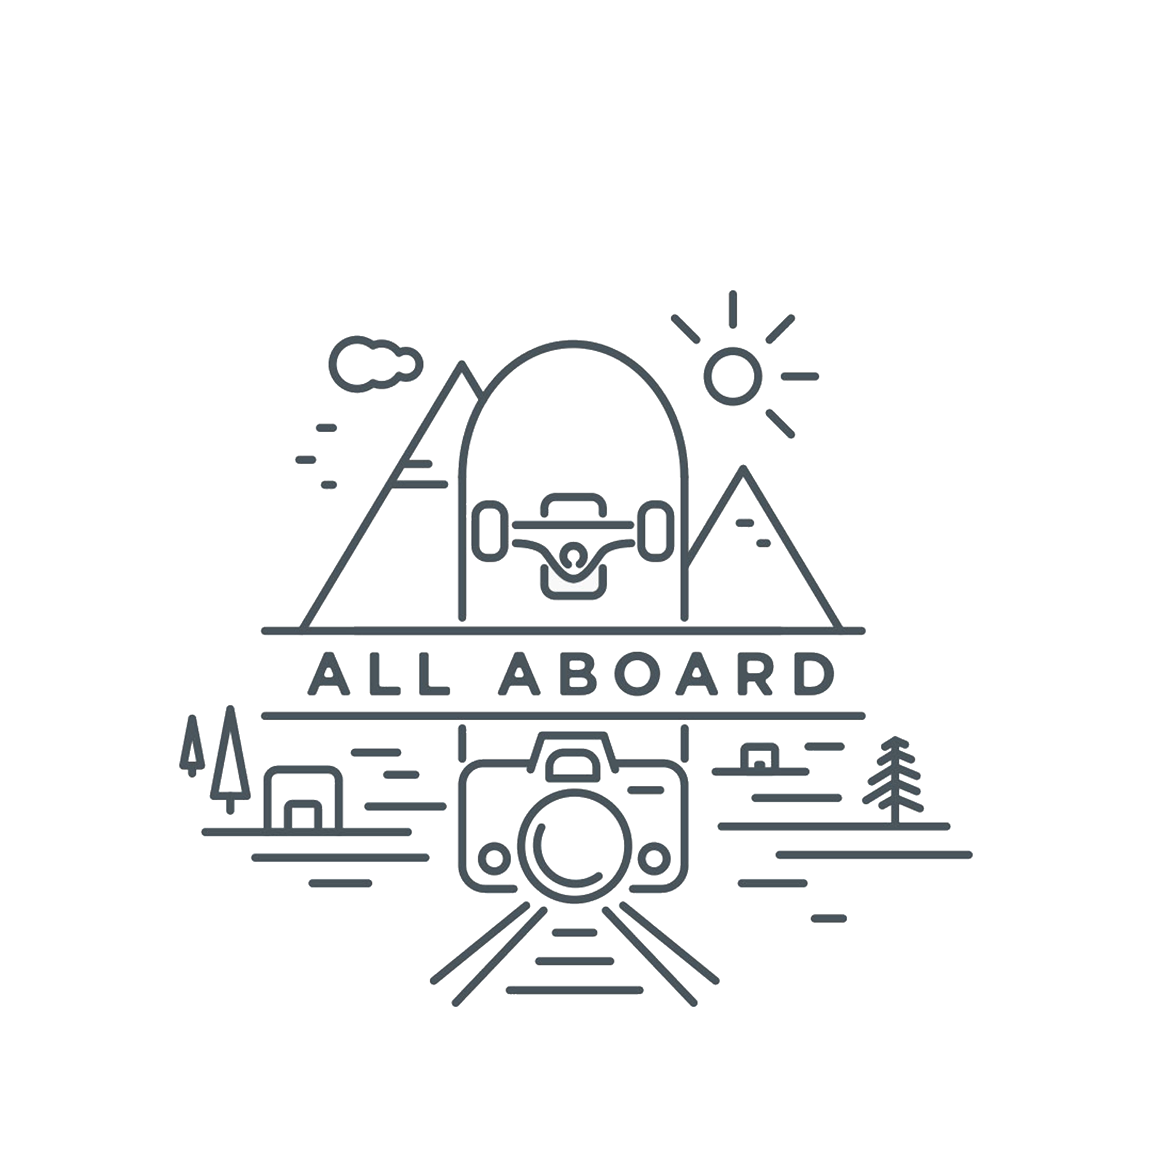 All Aboard Facebook Page - Follow the All Aboard Documentary Facebook page for updates. Premier coming soon!